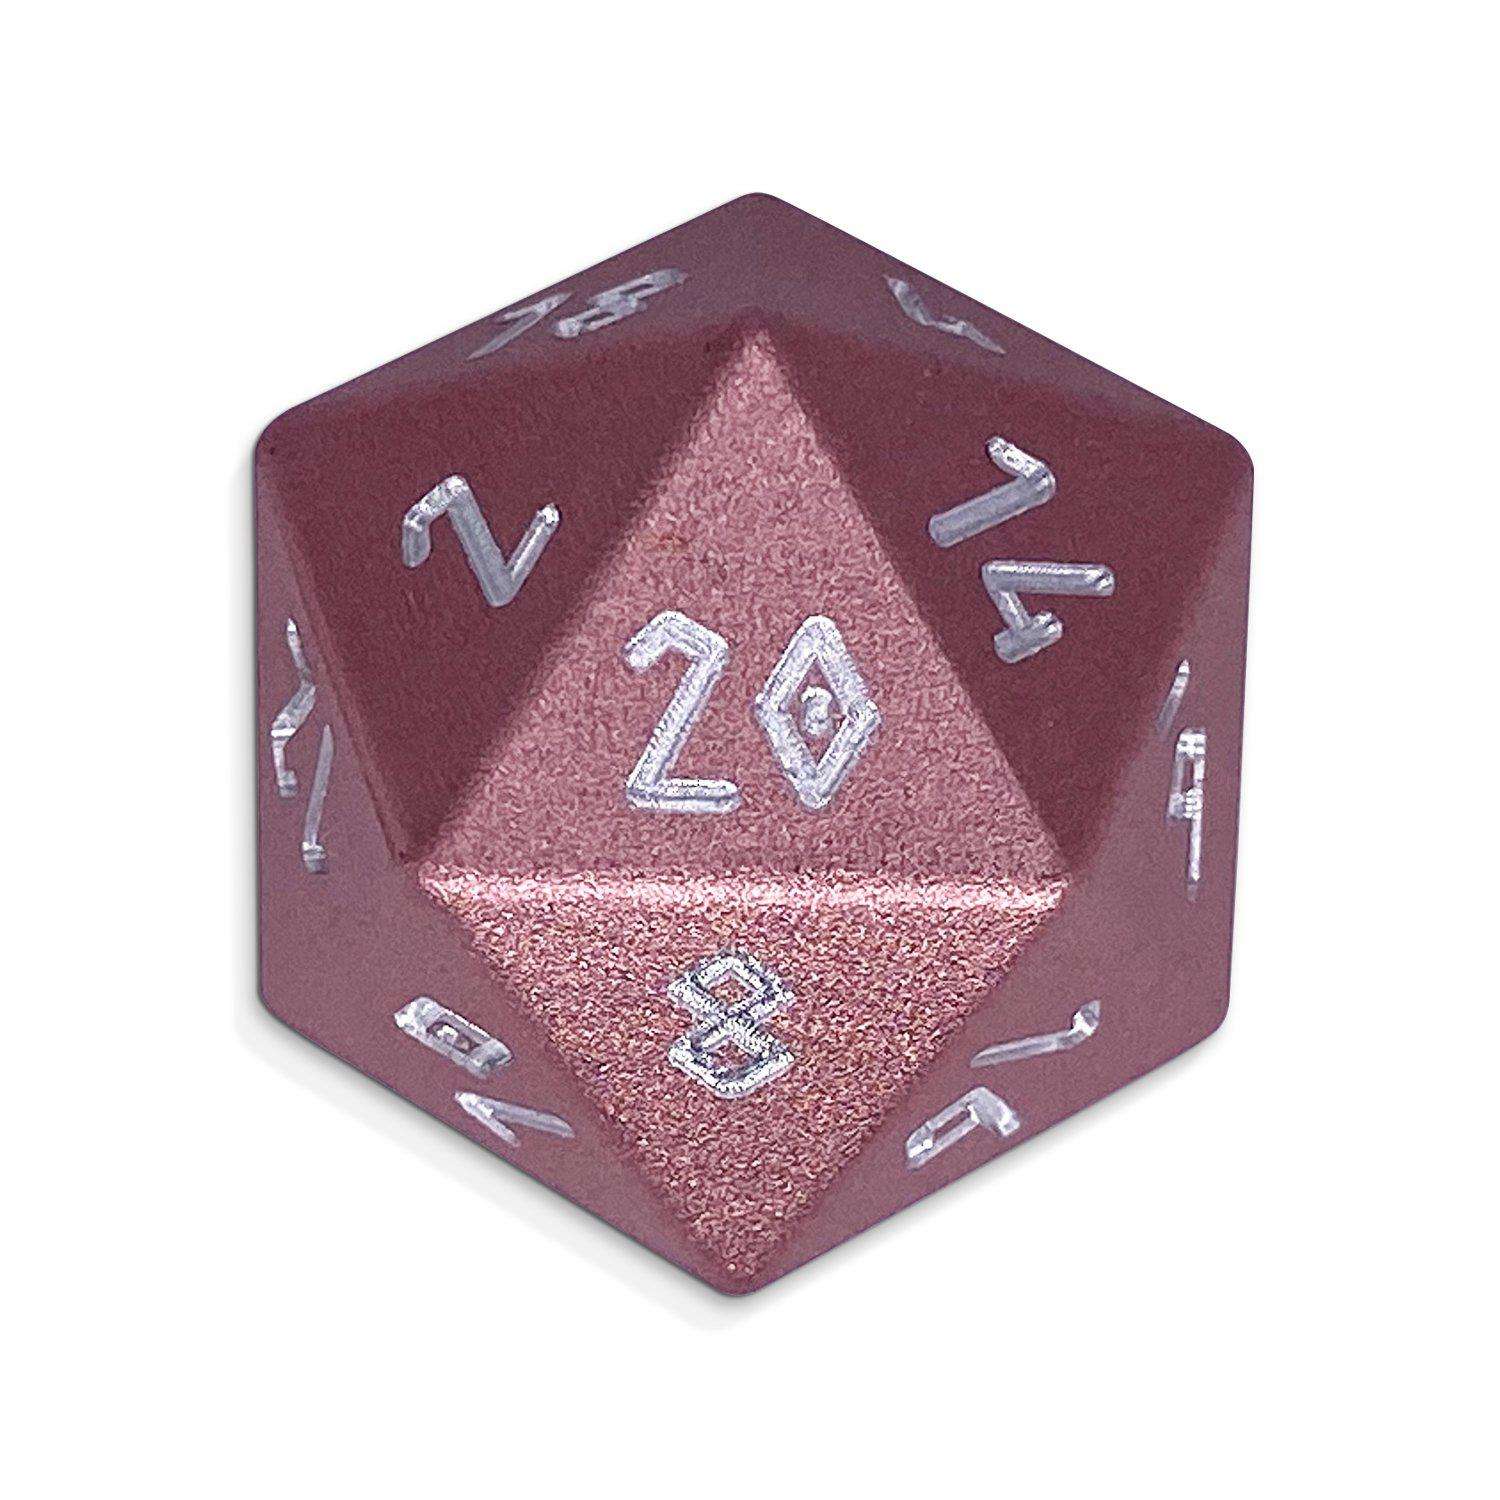 Warlock Pink - Single D20 - Aluminum Dice